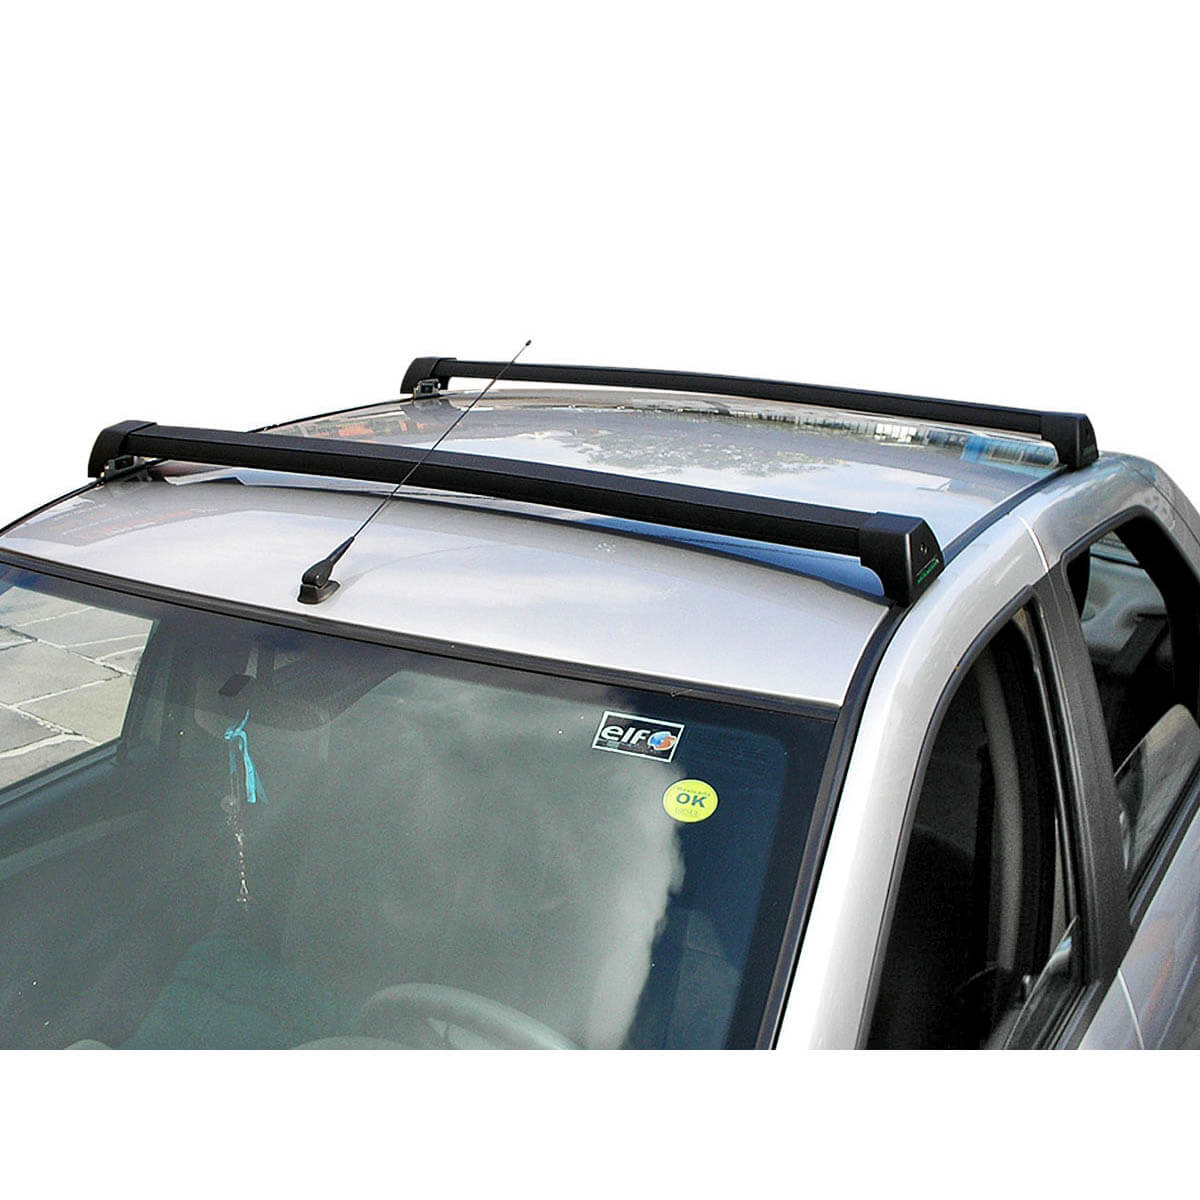 Rack de teto Long Life Sports preto I30 2009 a 2012